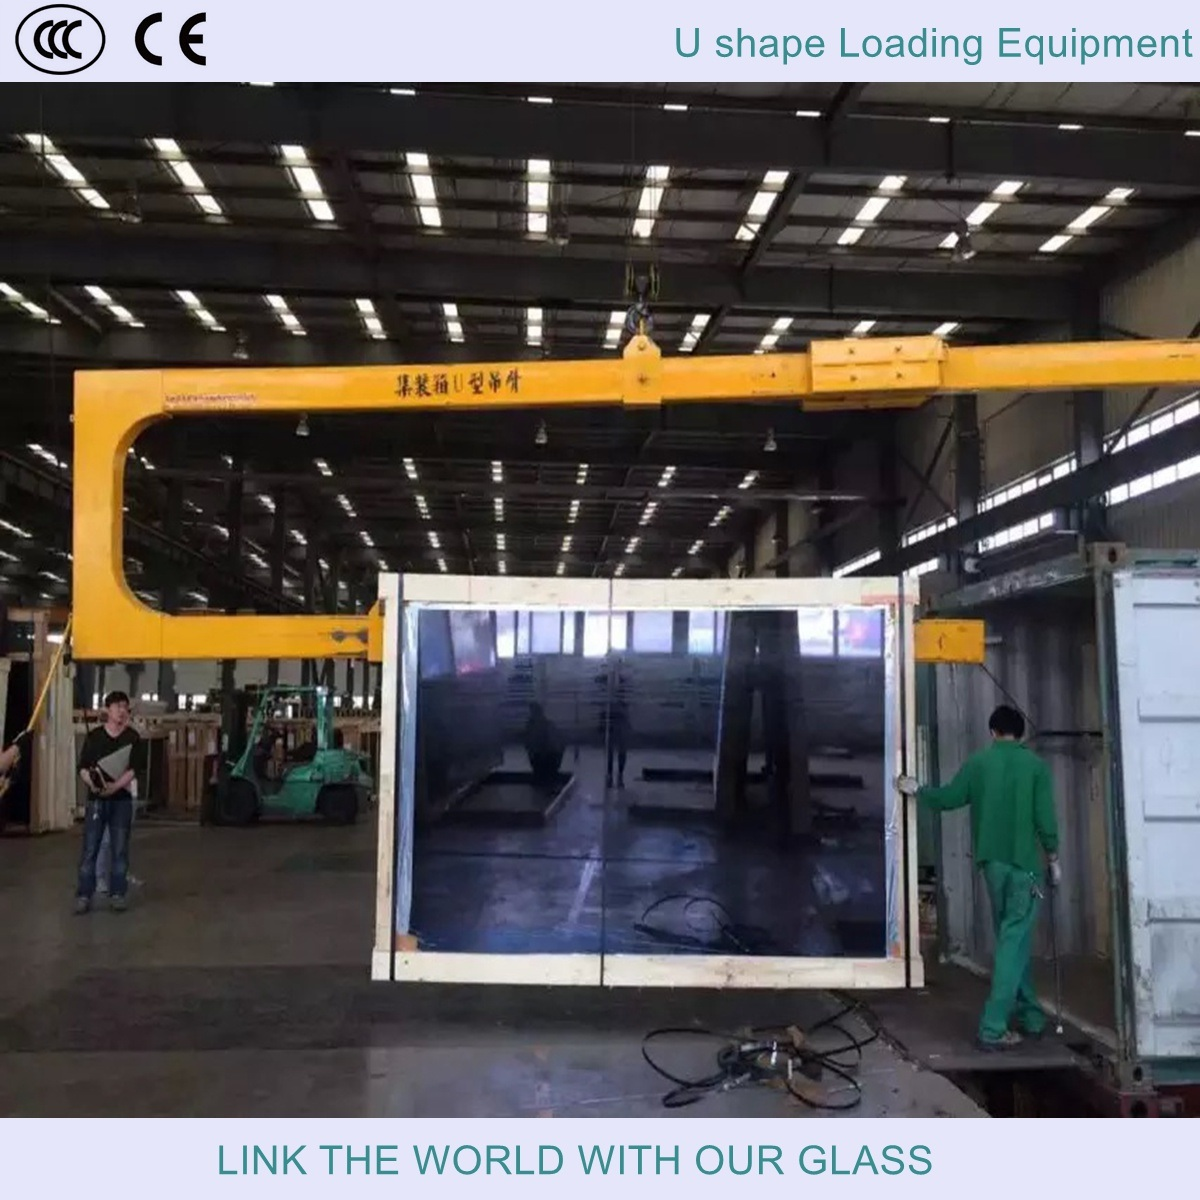 Forklift Truck Crane Arm for Glass Loading